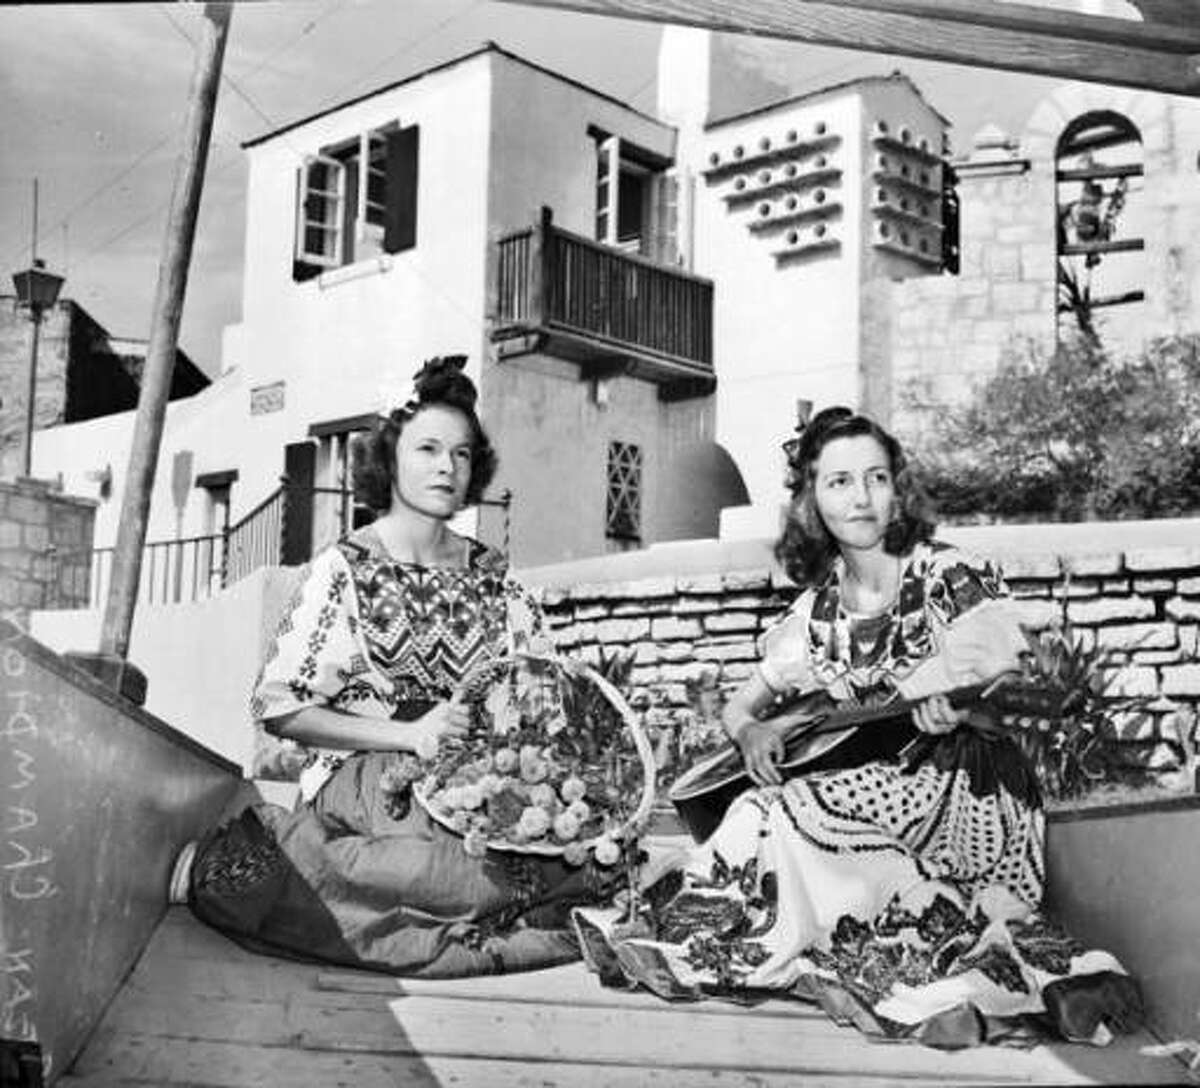 Jean Champion, with guitar, and Joan Brown, both in costume, pose in a sight-seeing gondola as it passes the Arneson River Theatre in 1942.